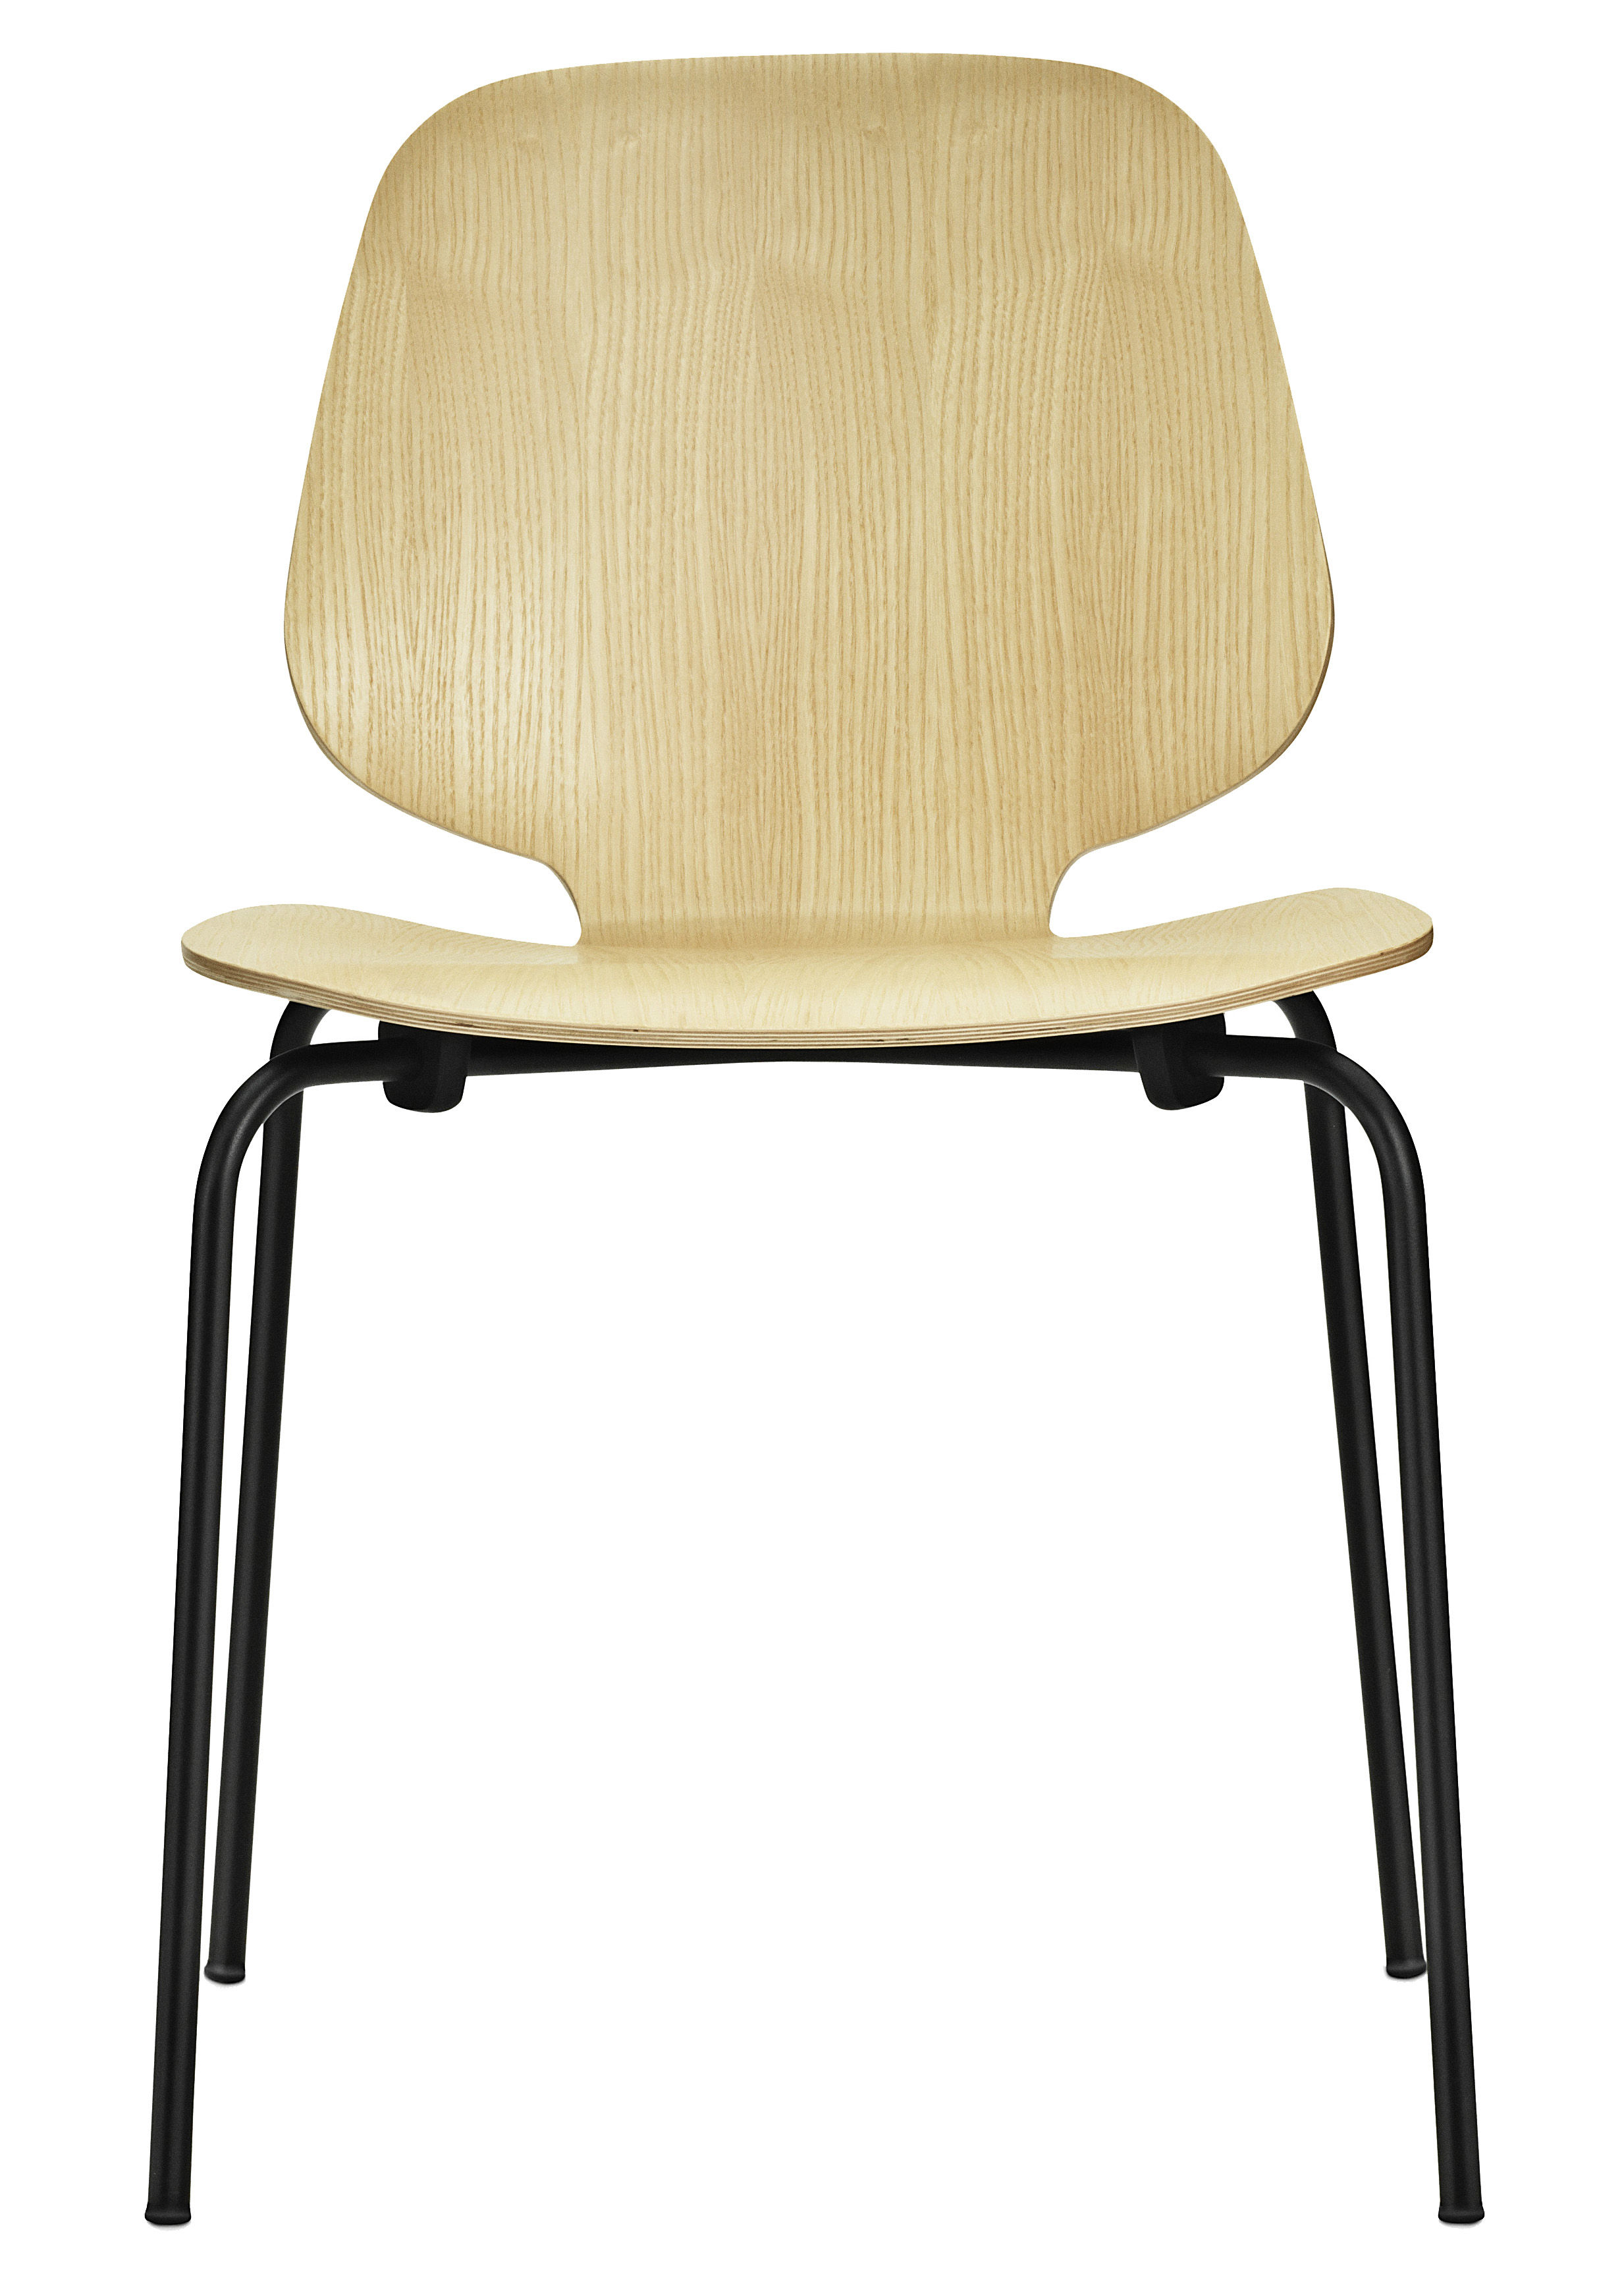 Furniture - Chairs - My Chair Stacking chair - Wood seat by Normann Copenhagen - Ash / Black legs - Ash veneer, Lacquered steel